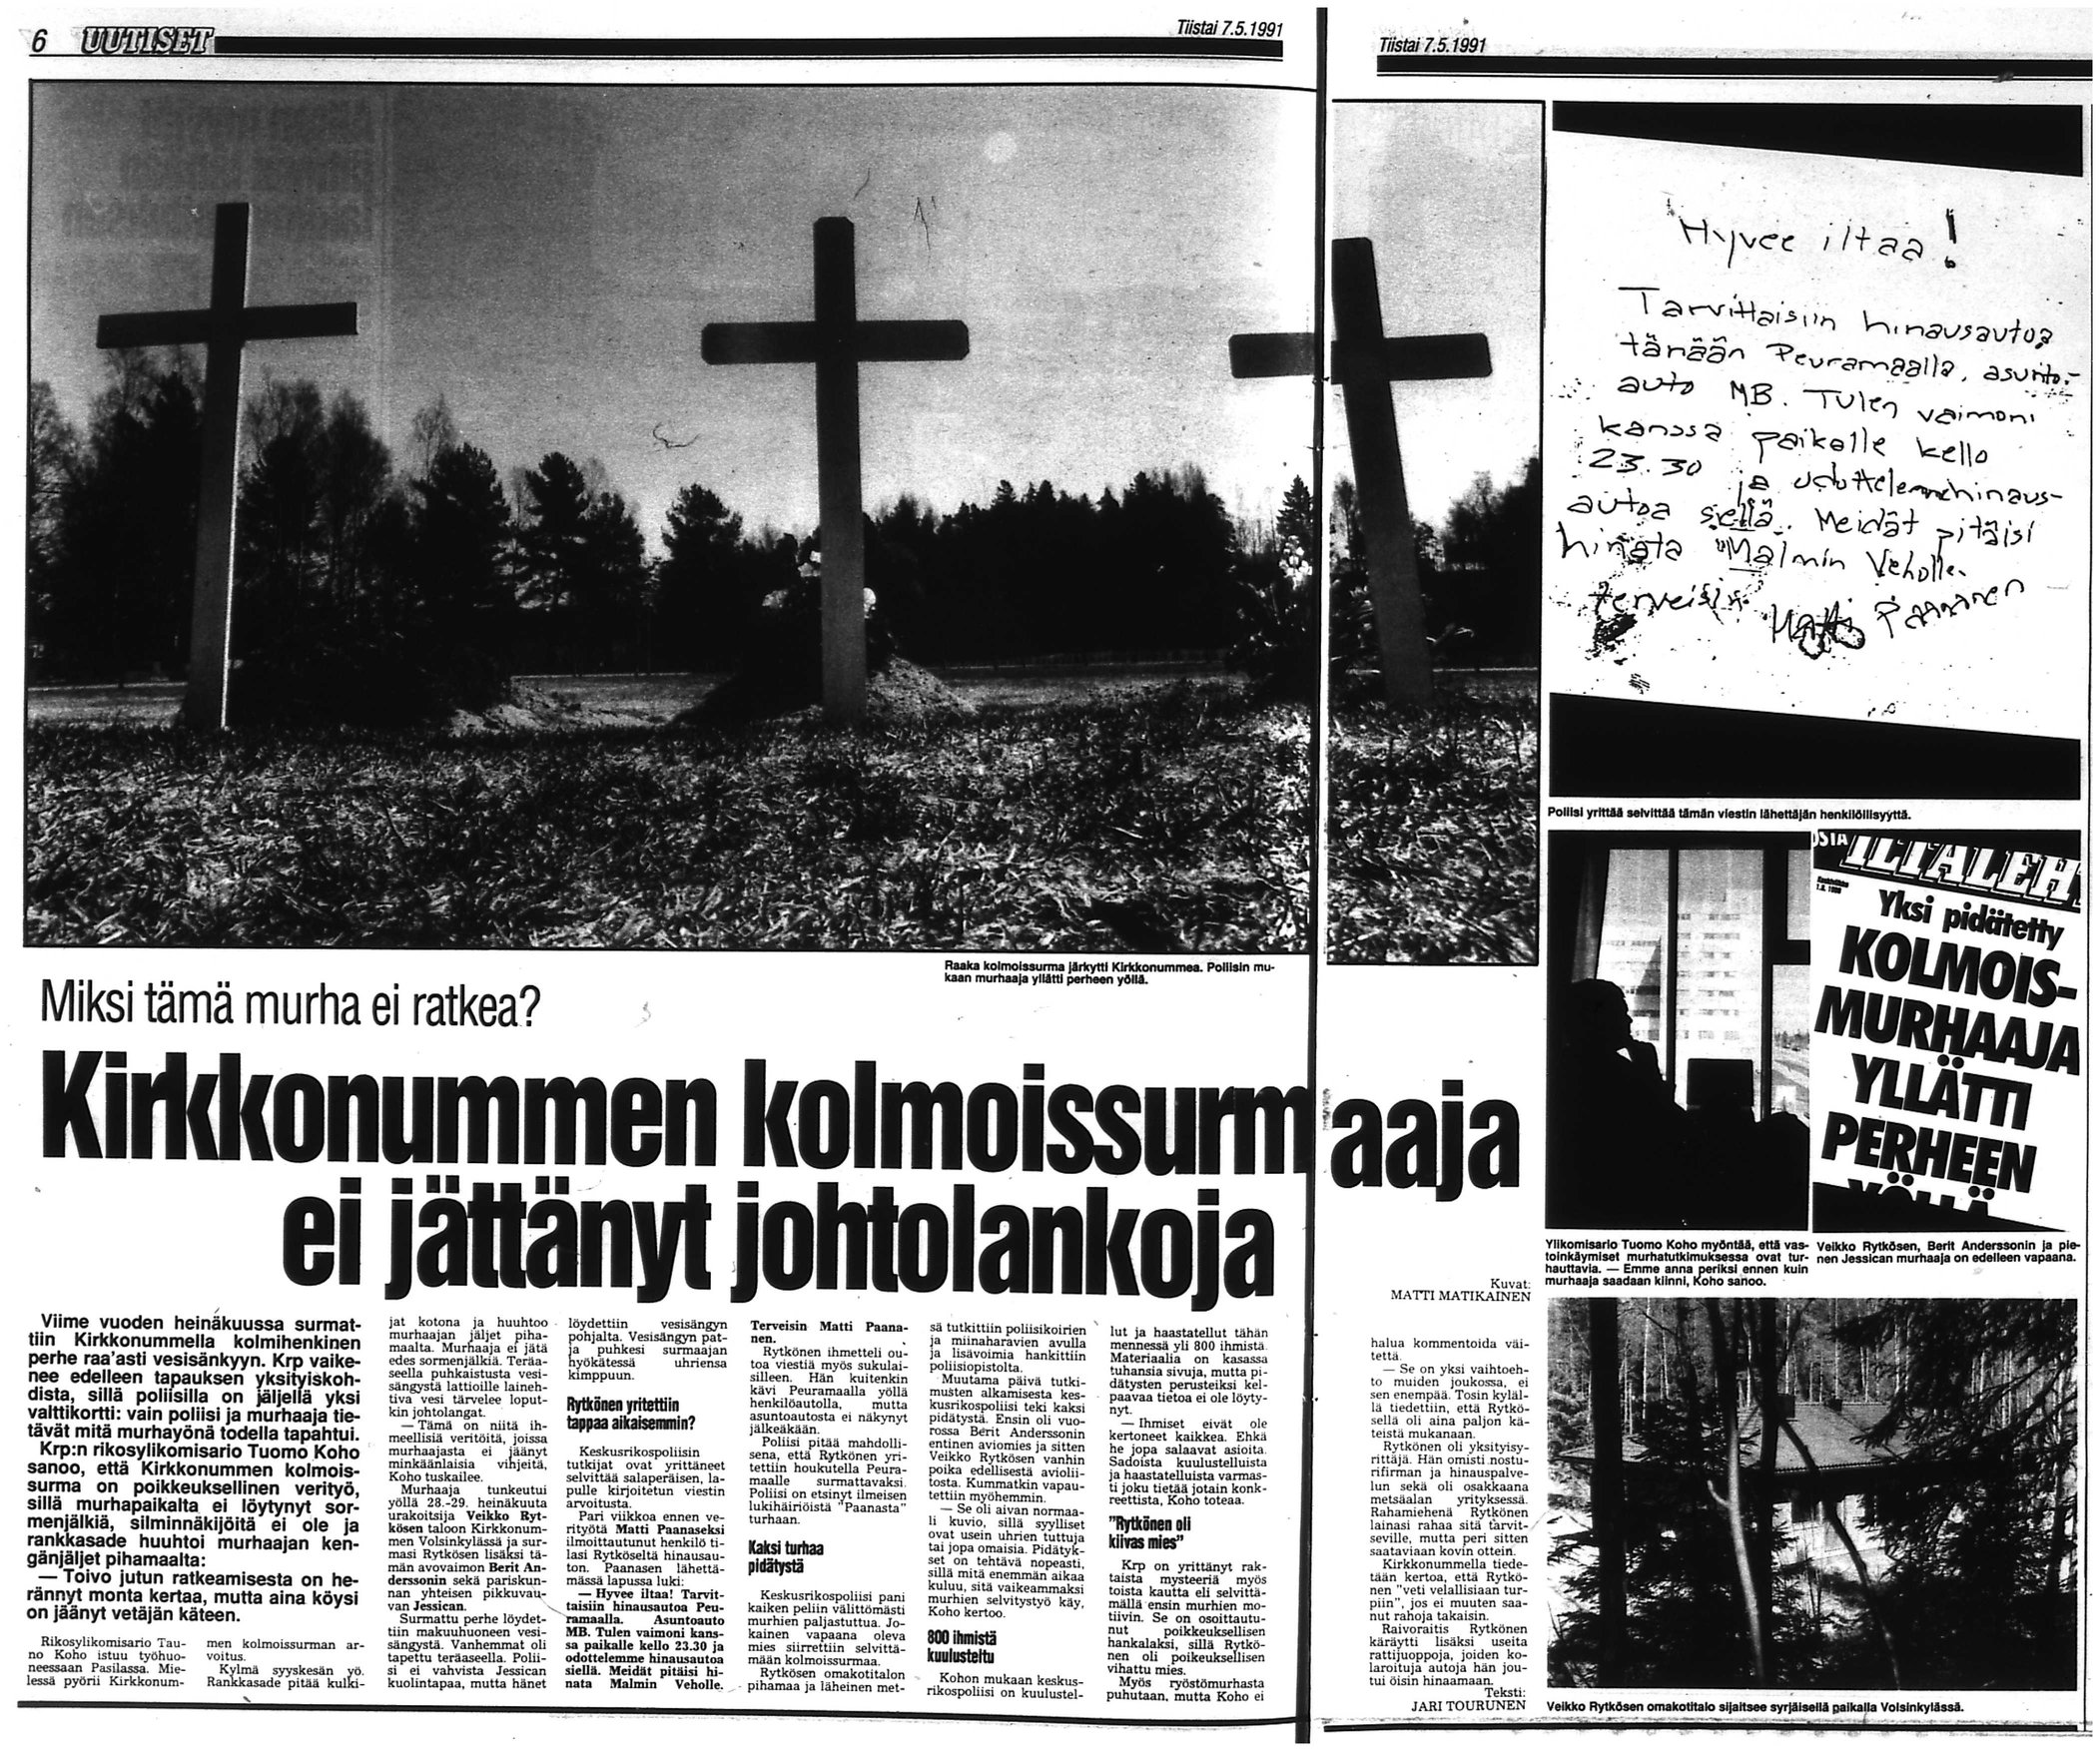 An old newspaper clip about the murders (in Finnish) courtesy of Iltalehti.